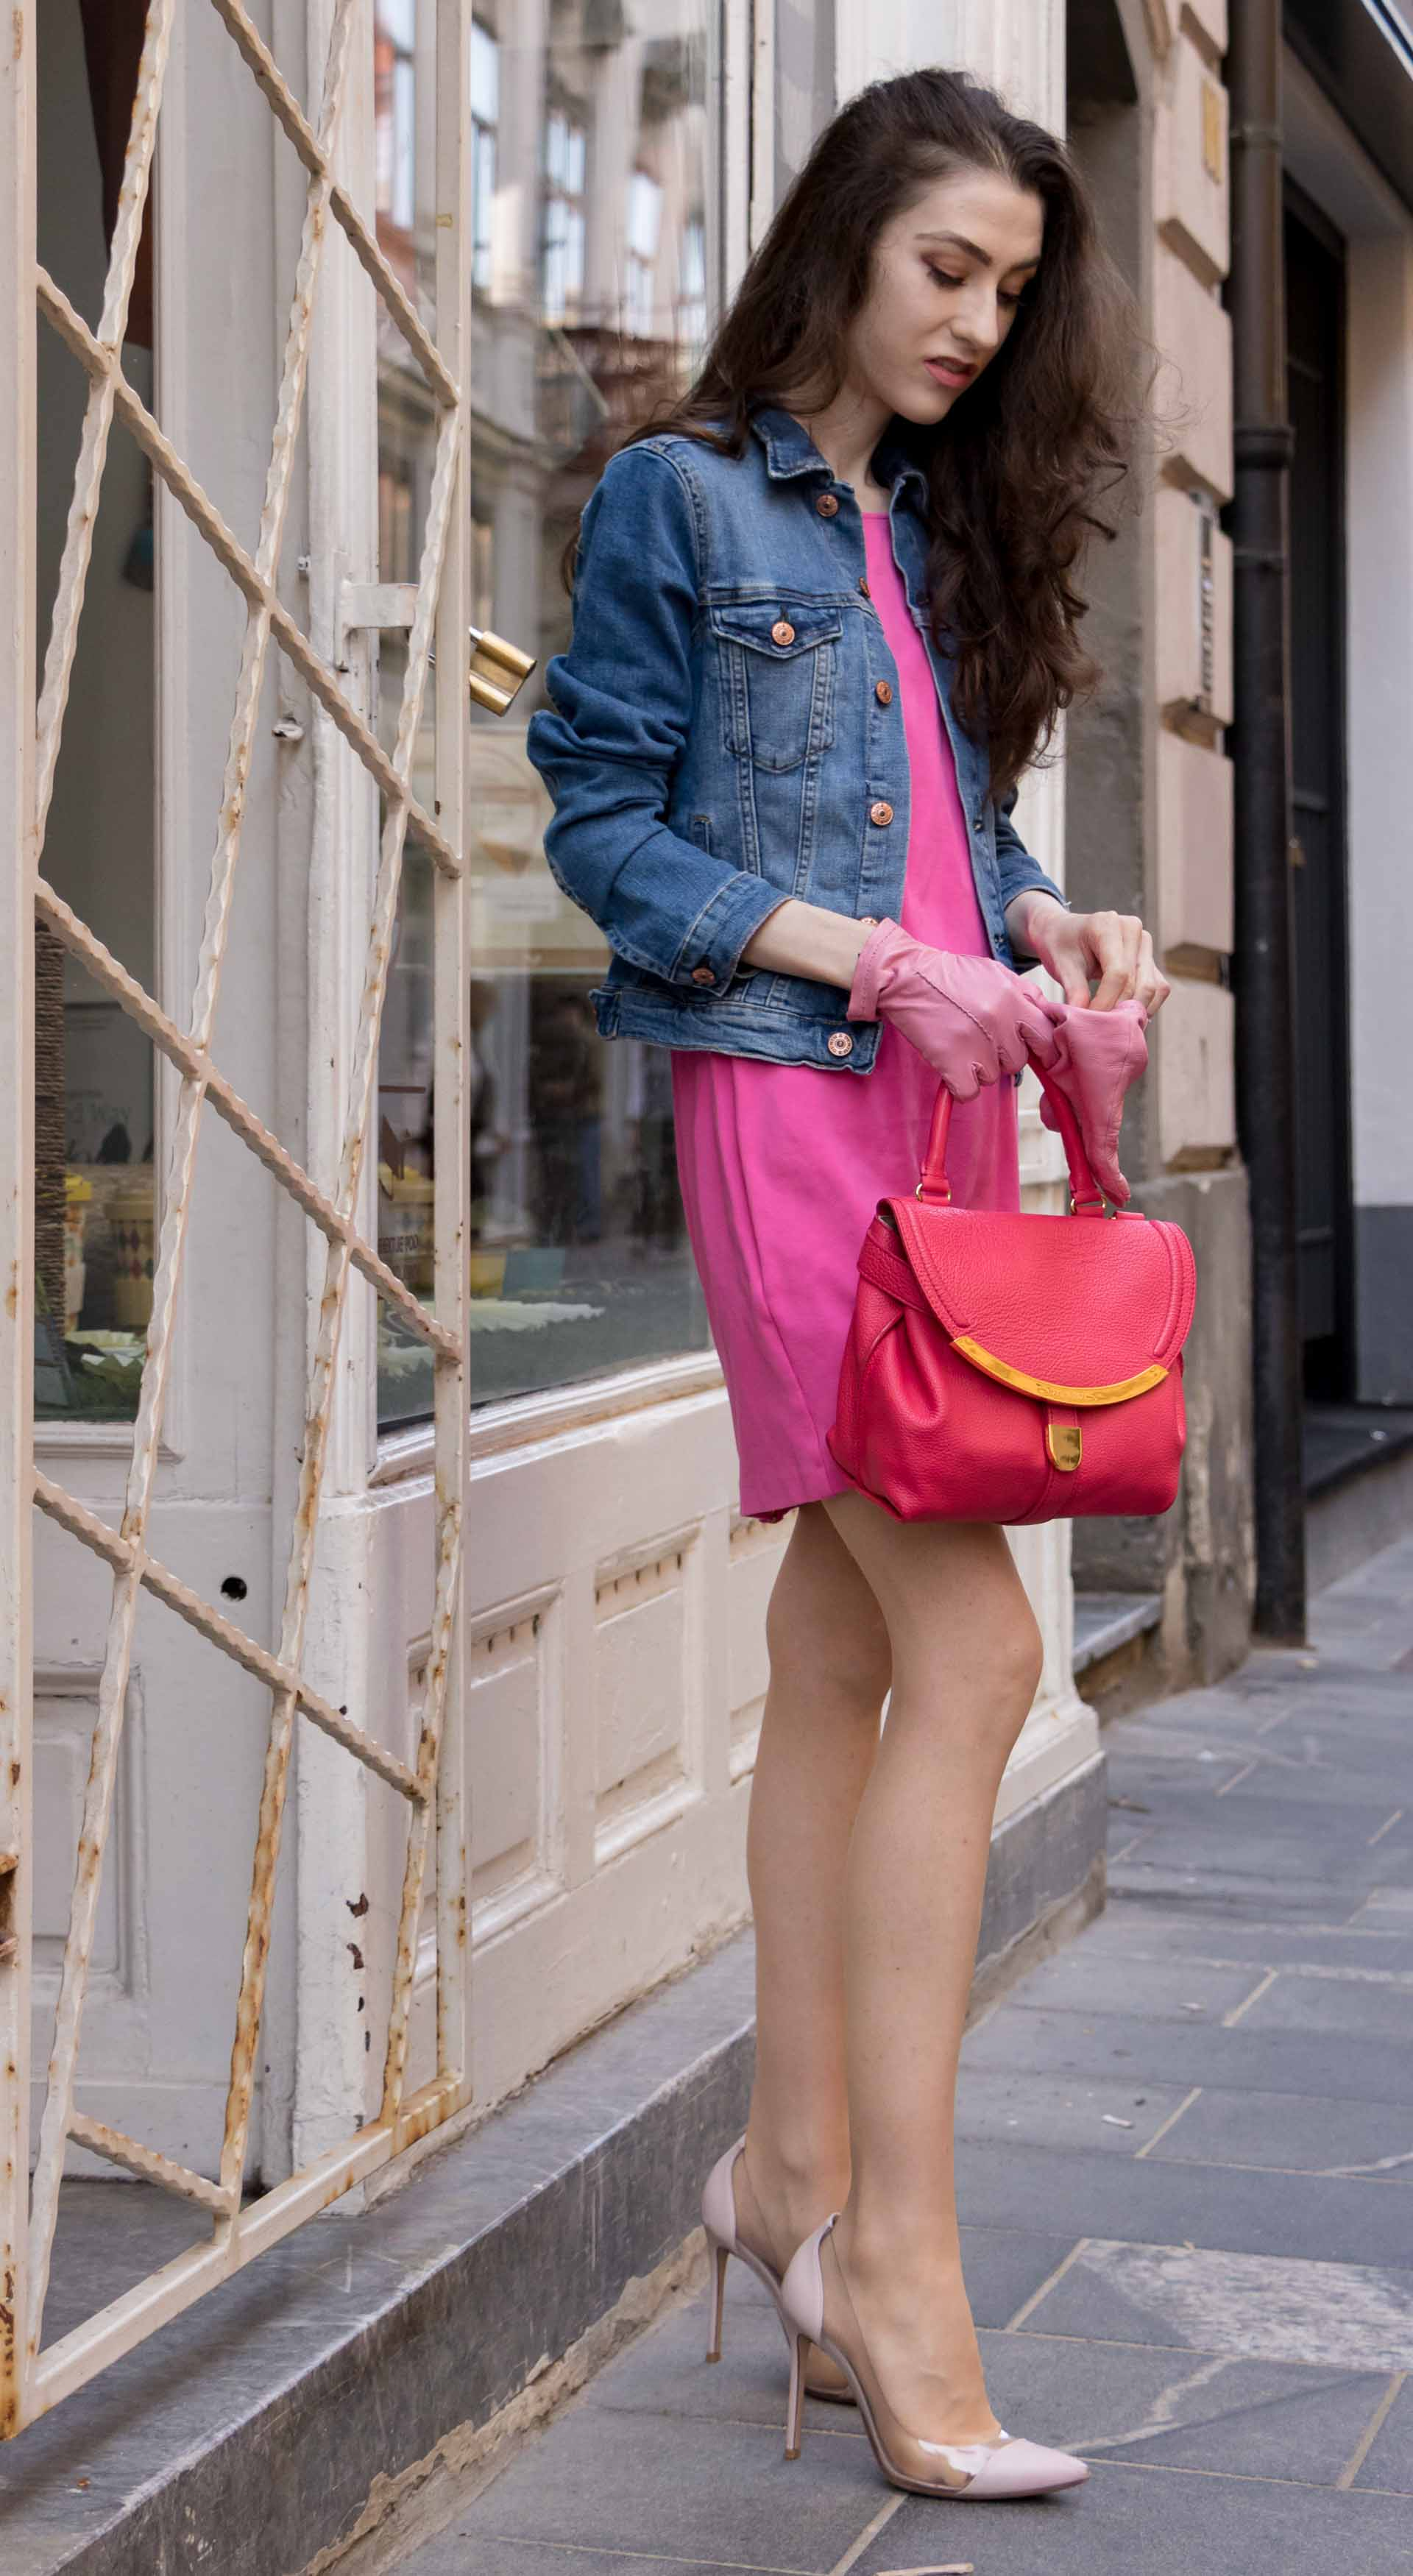 Veronika Lipar Fashion Blogger of Brunette from Wall Street dressed in H&M denim jacket, pink bodycon dress, blush Gianvito Rossi plexi pumps, pink Forzieri gloves, See by Chloé pink top handle bag, Adam Selman x Le Specs white cat eye Lolita sunglasses